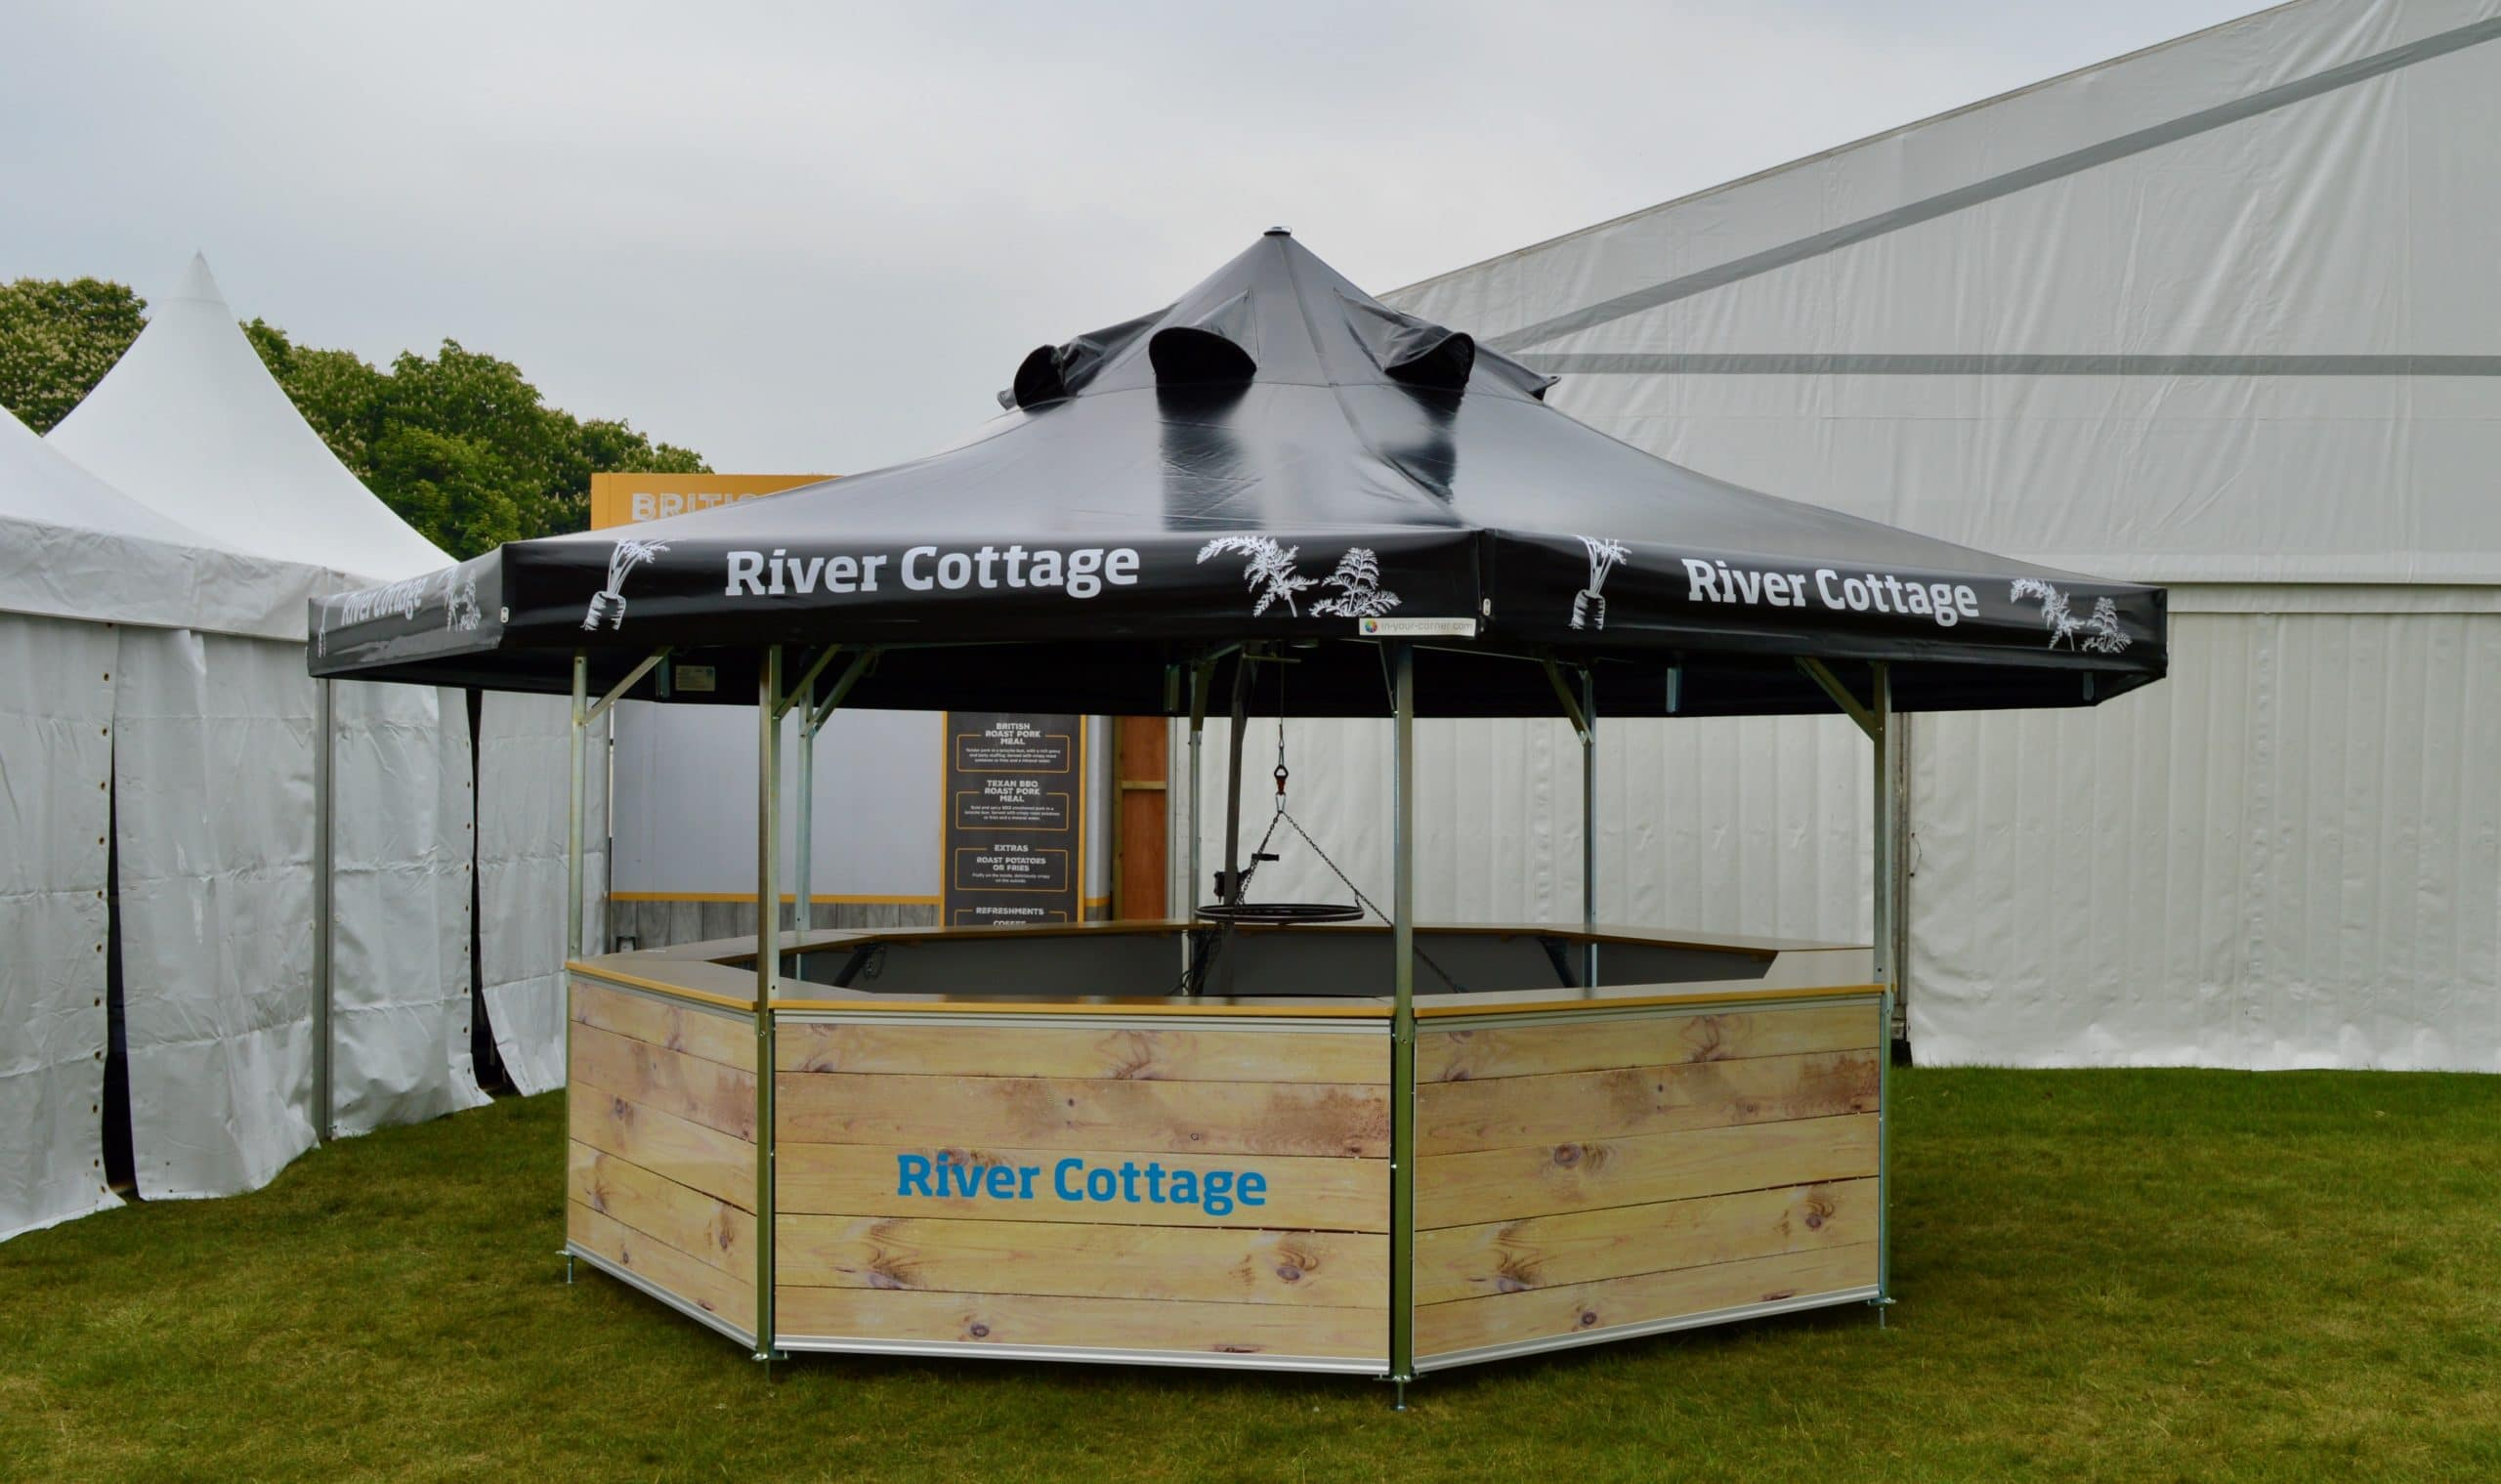 <p>Barbecues & Grills – Sanki Swinging Grills – Commercial Grill – Octagonal Pavilion – Windsor Horse Show Catering – River Cottage</p> <p>Sanki Swinging Grill housed in an Octagonal Pavilion supplied with special roof openings. Branded to customer design and needs</p> <p>Showing Grill with warming Ring.</p> <p>Suitable for Pubs, Restaurants, Events such as Music Festivals, Horse Shows, County Shows etc</p>